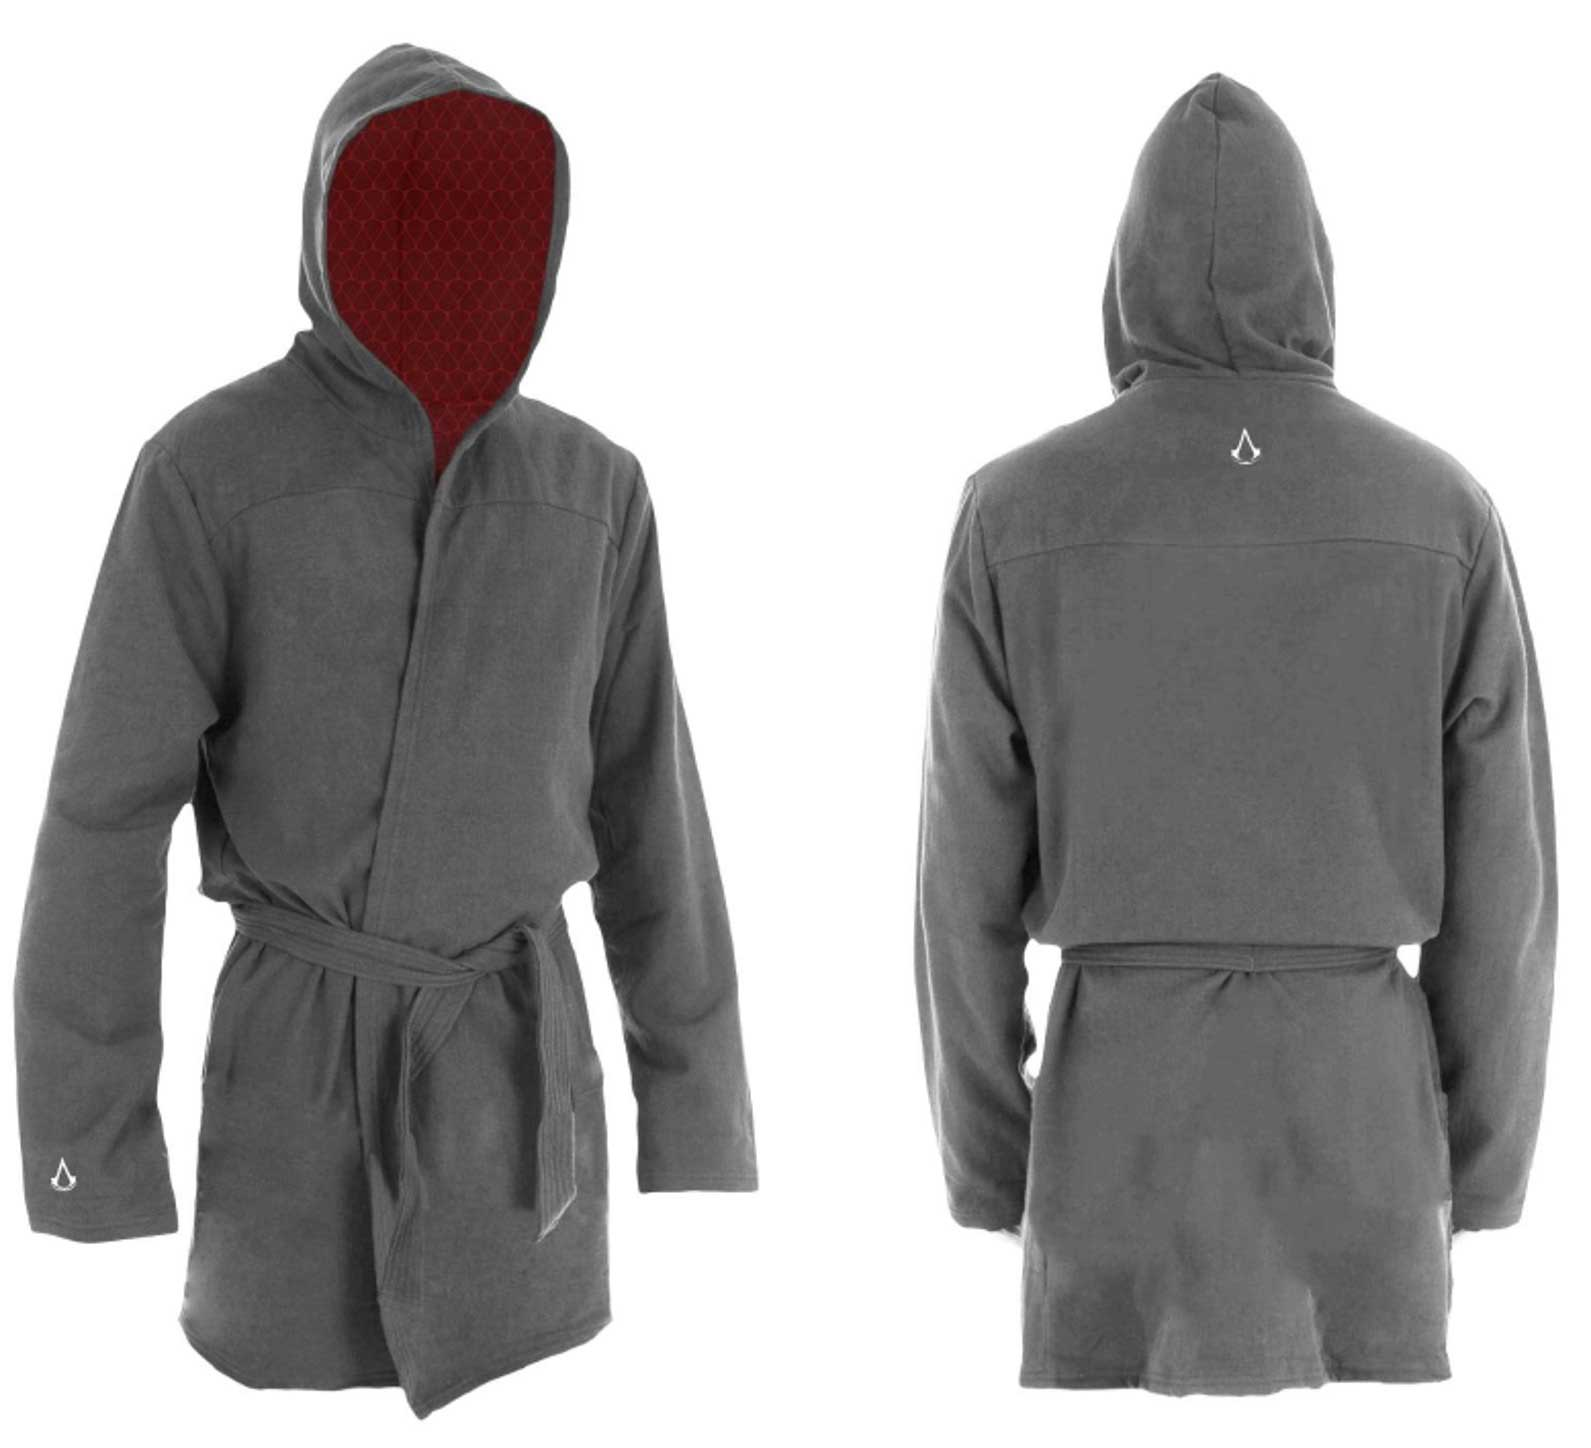 Assassin's Creed Kinetic - Bathrobe Grey - Large/X-Large